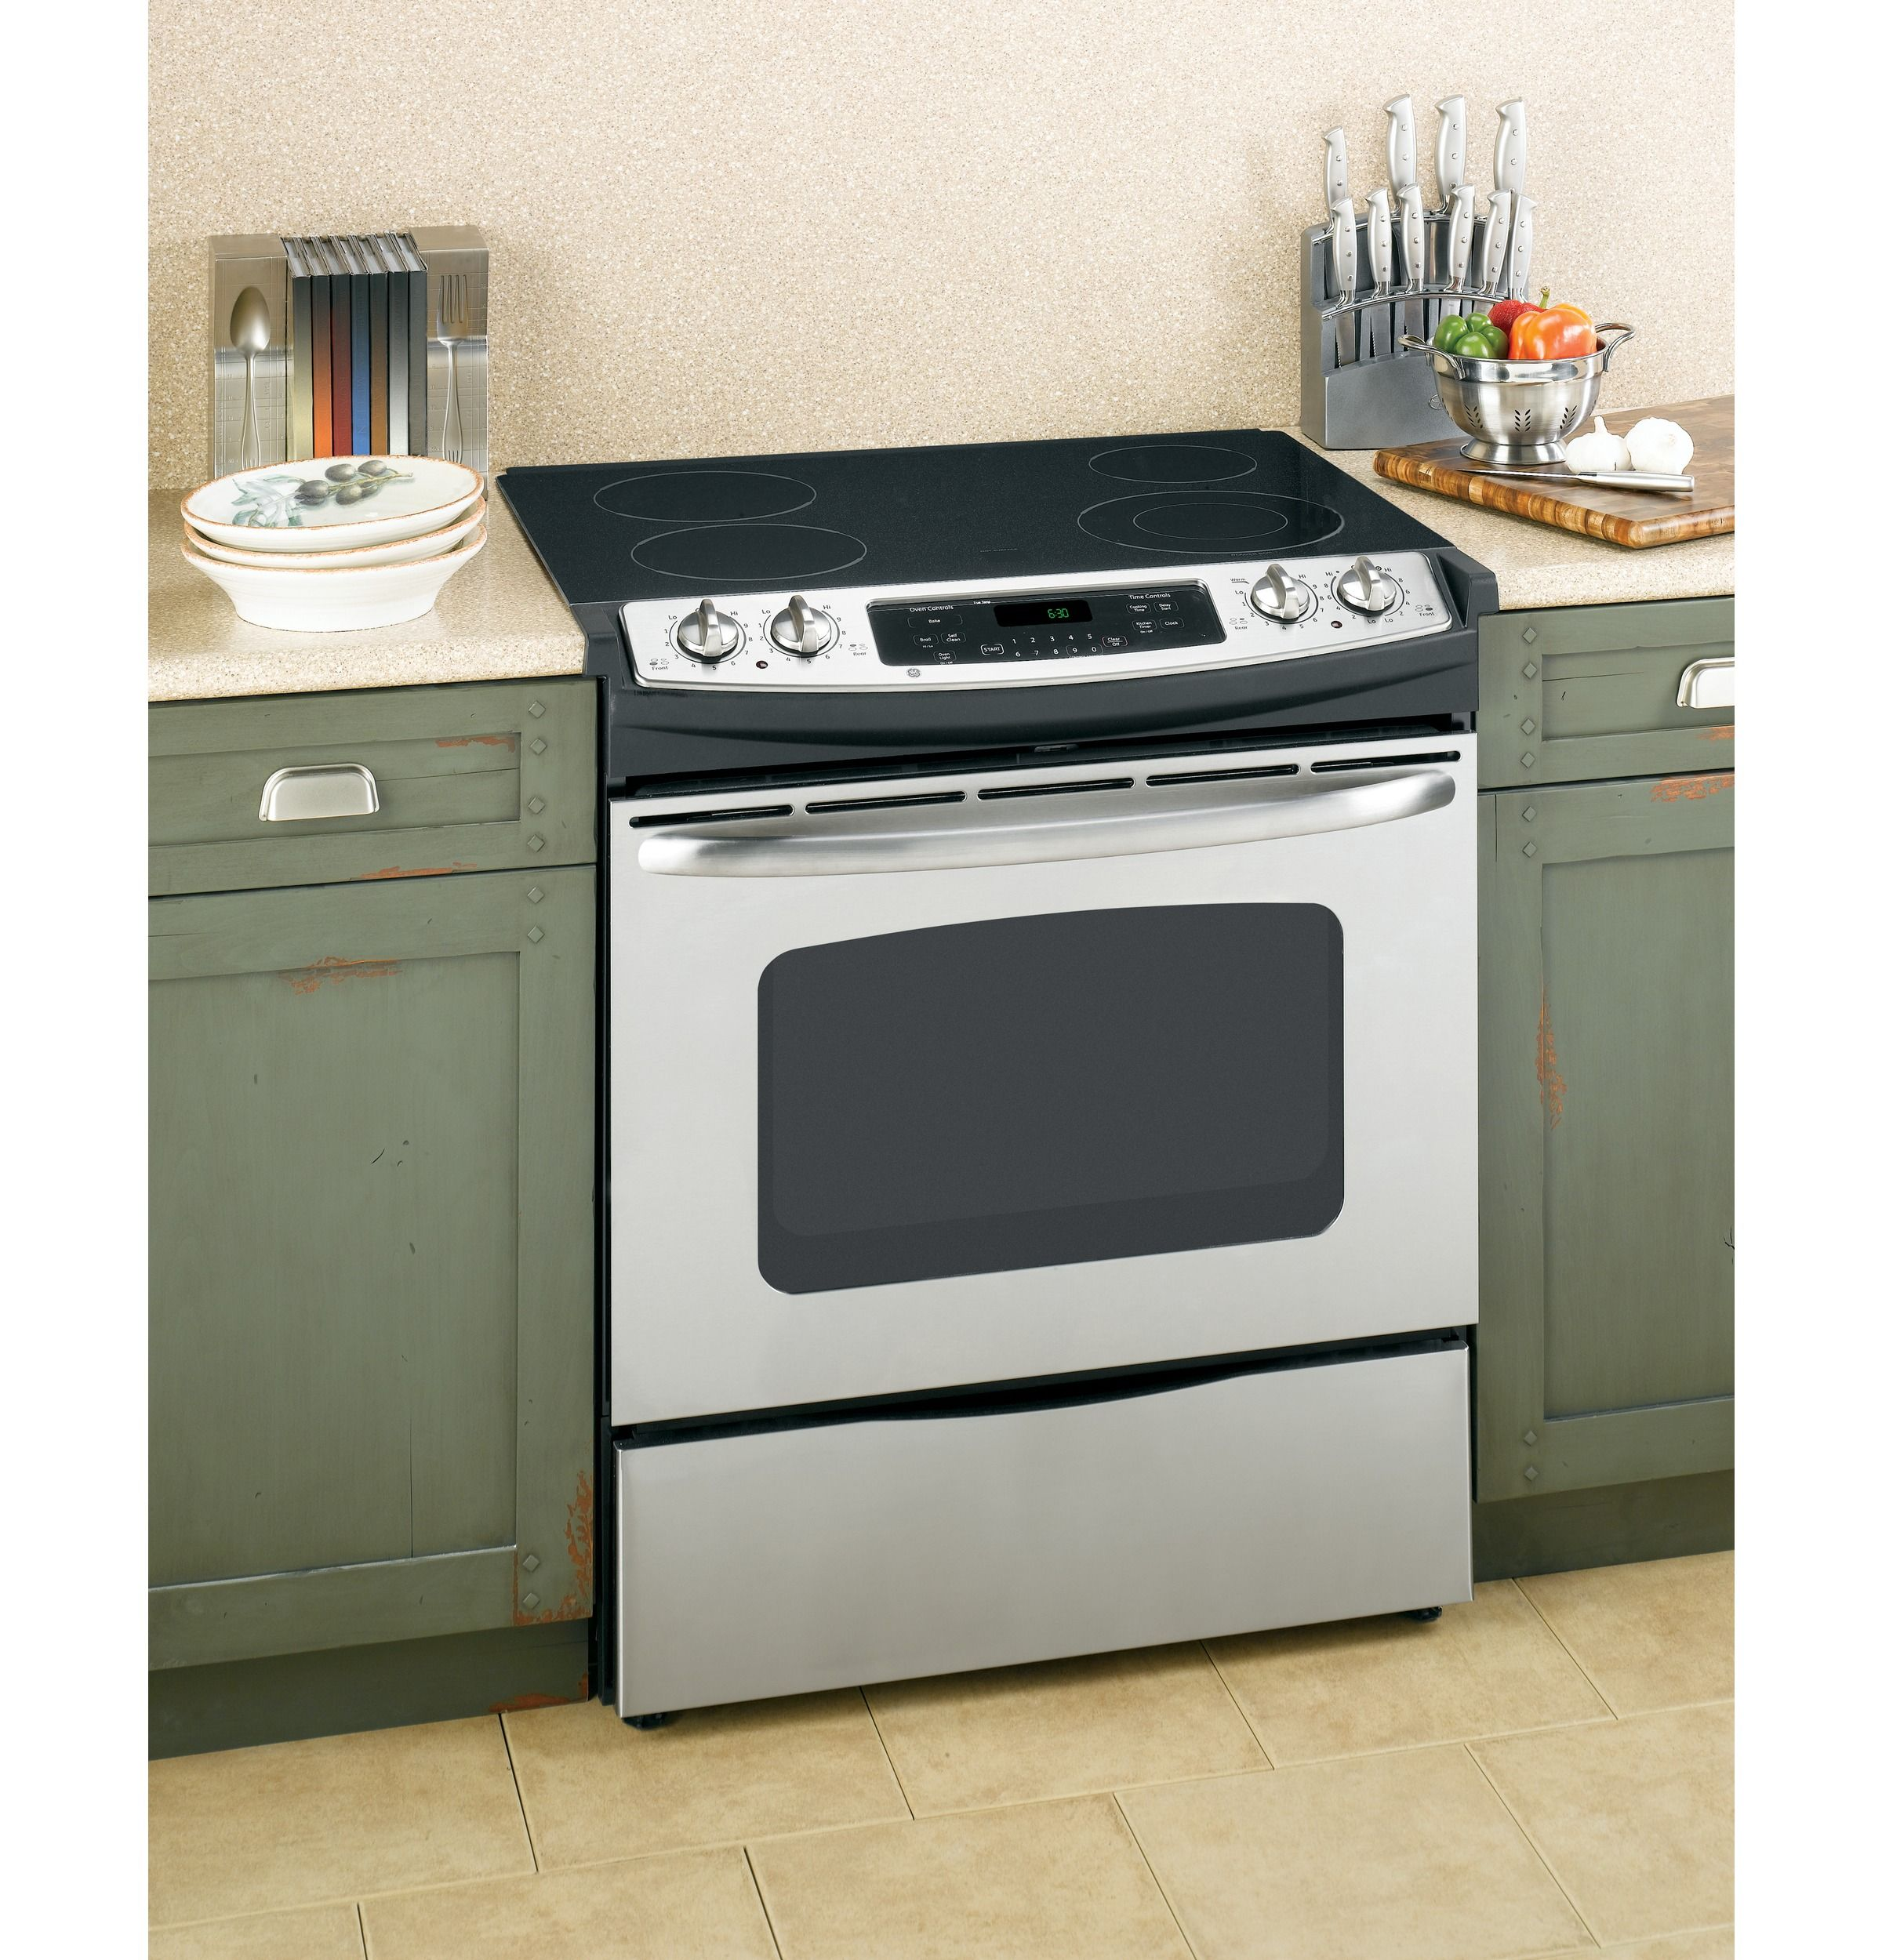 Jsp42snss Ge 30 Slide In Electric Range With Self Cleaning Oven